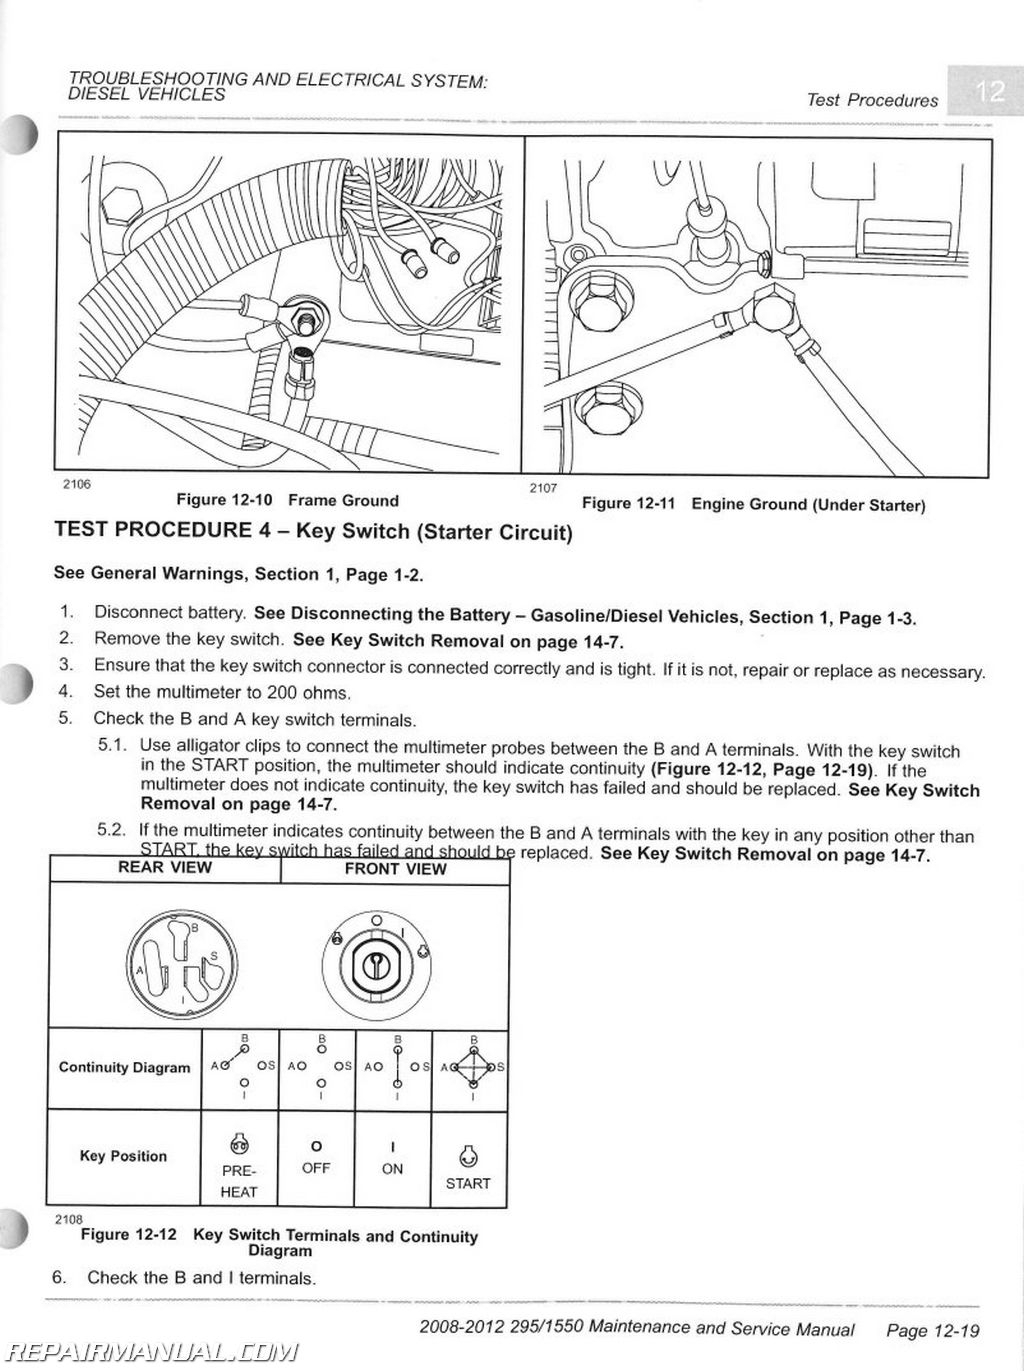 ingersoll rand club car wiring diagram in luxury parts 43 in inside club car golf cart parts diagram ingersoll rand club car wiring diagram in luxury parts 43 in Ingersoll Rand Compressor Parts Diagram at crackthecode.co